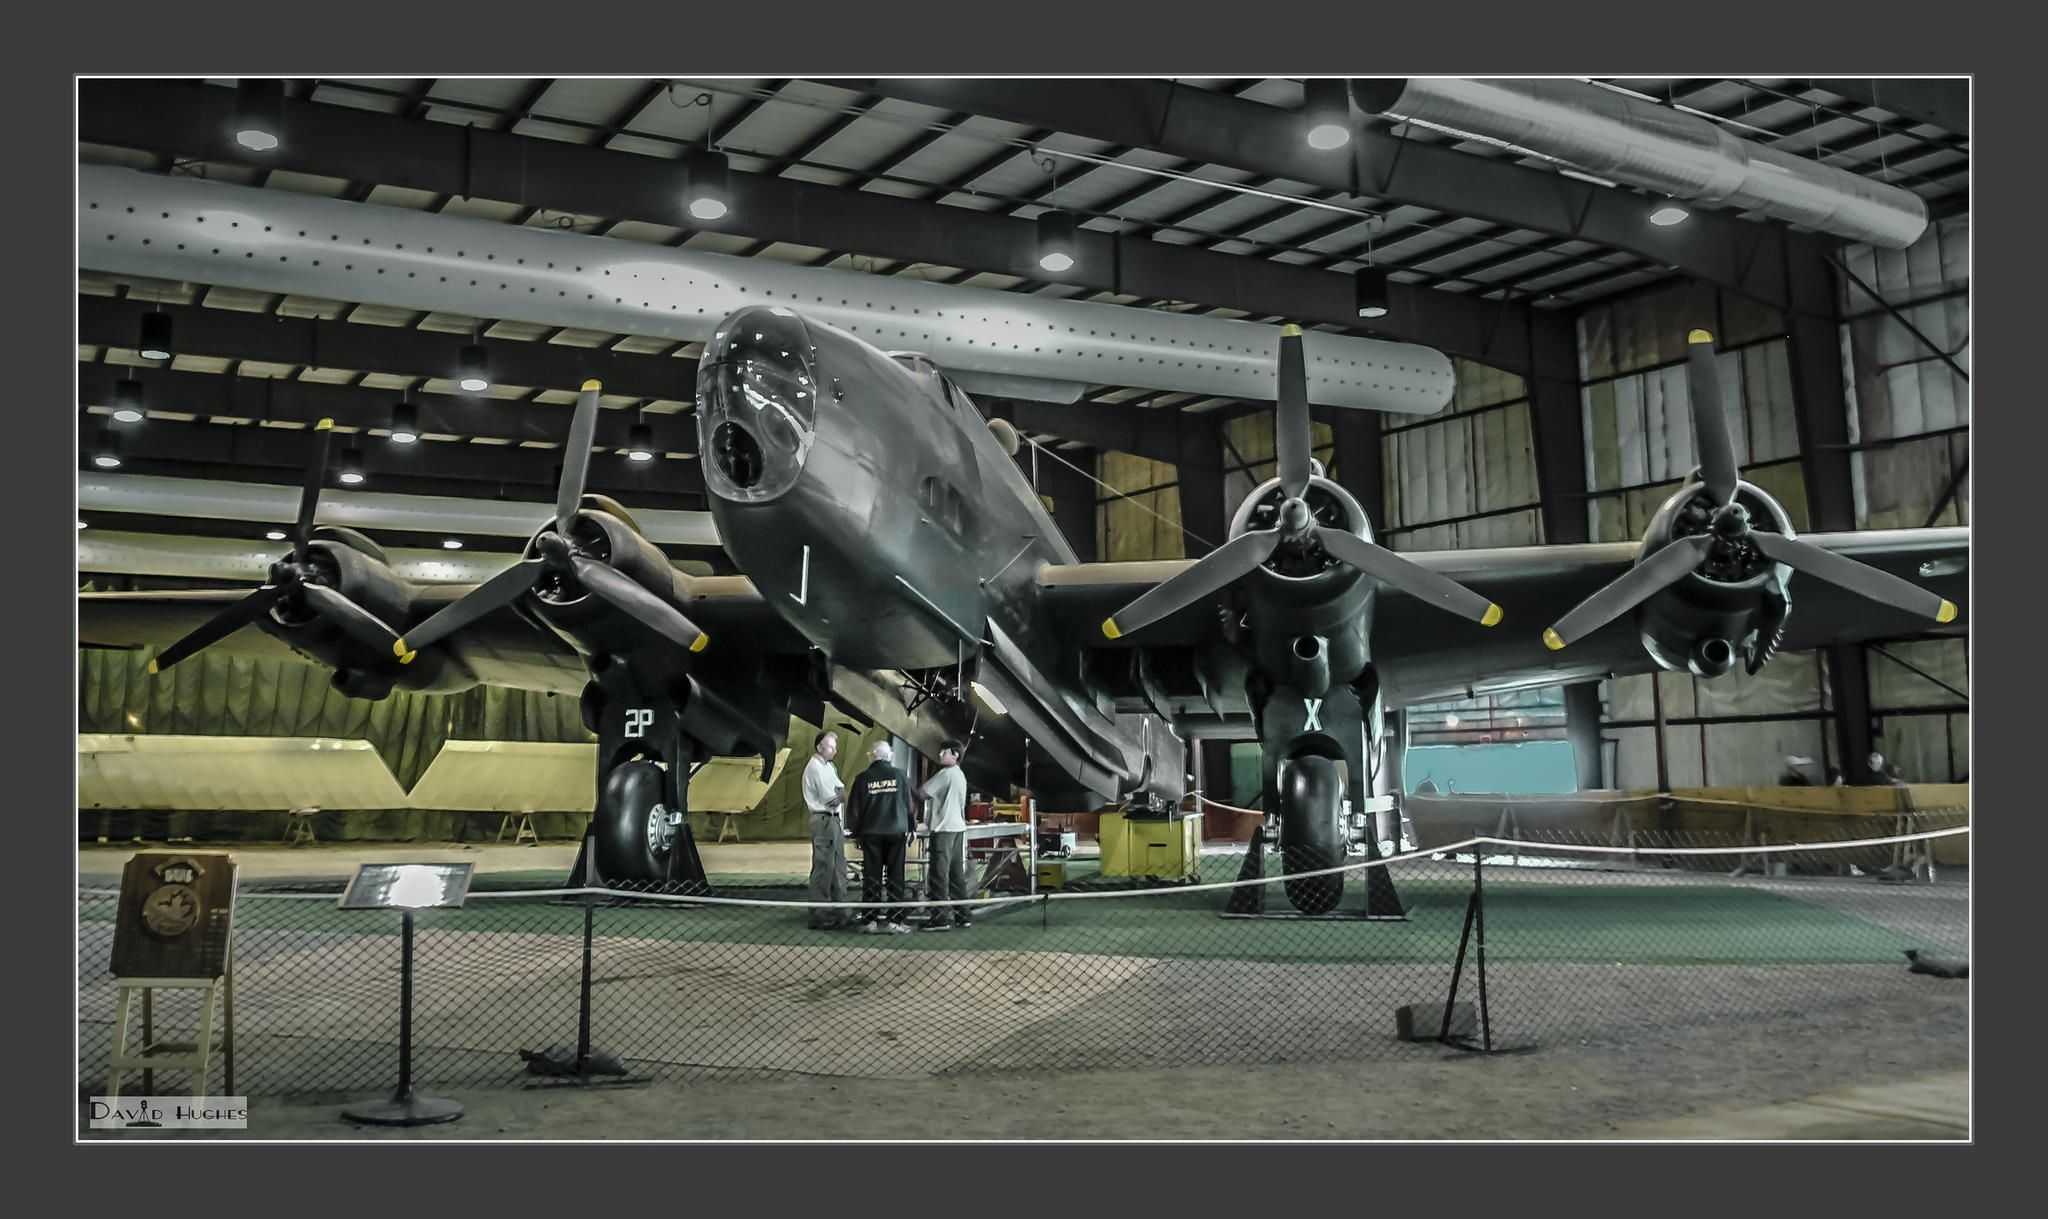 Photograph WWII Hampden Bomber by Dave Hughes on 500px